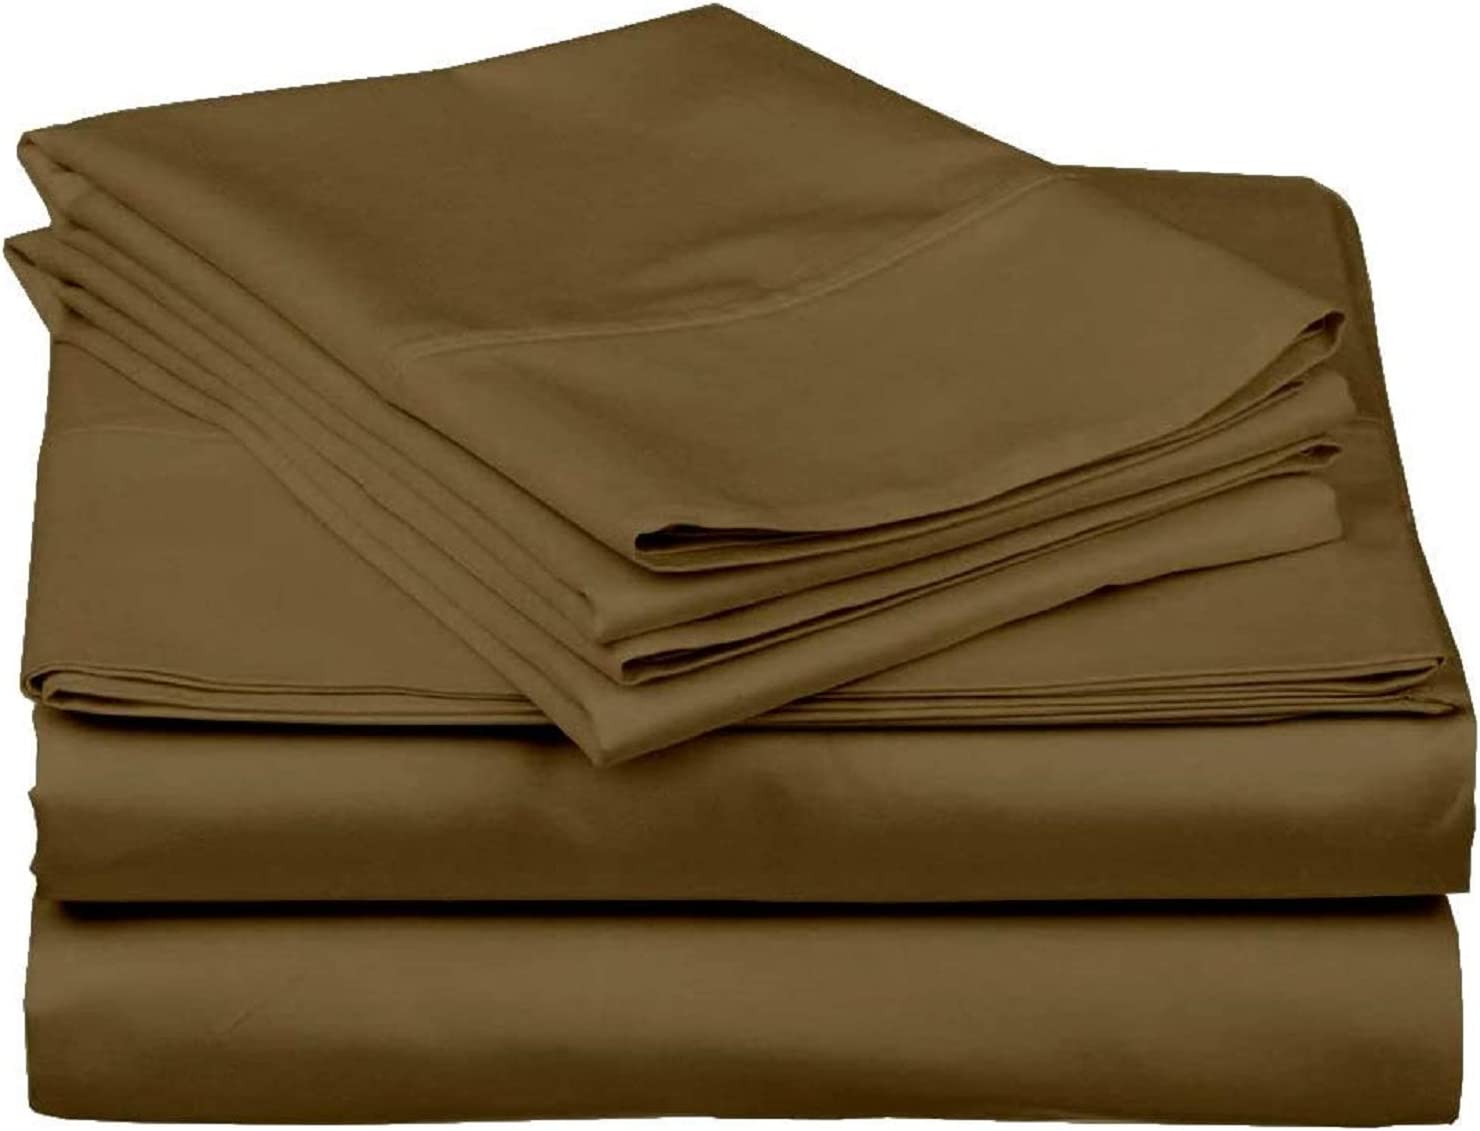 MD Home Decore Split Head King Bed Sheet Set 4PCs - 400 TC Egyptian Cotton Split Head Sheets Set The top or Flex Head of The Mattress- Split 34 inches Down - Taupe Solid, Split King Size